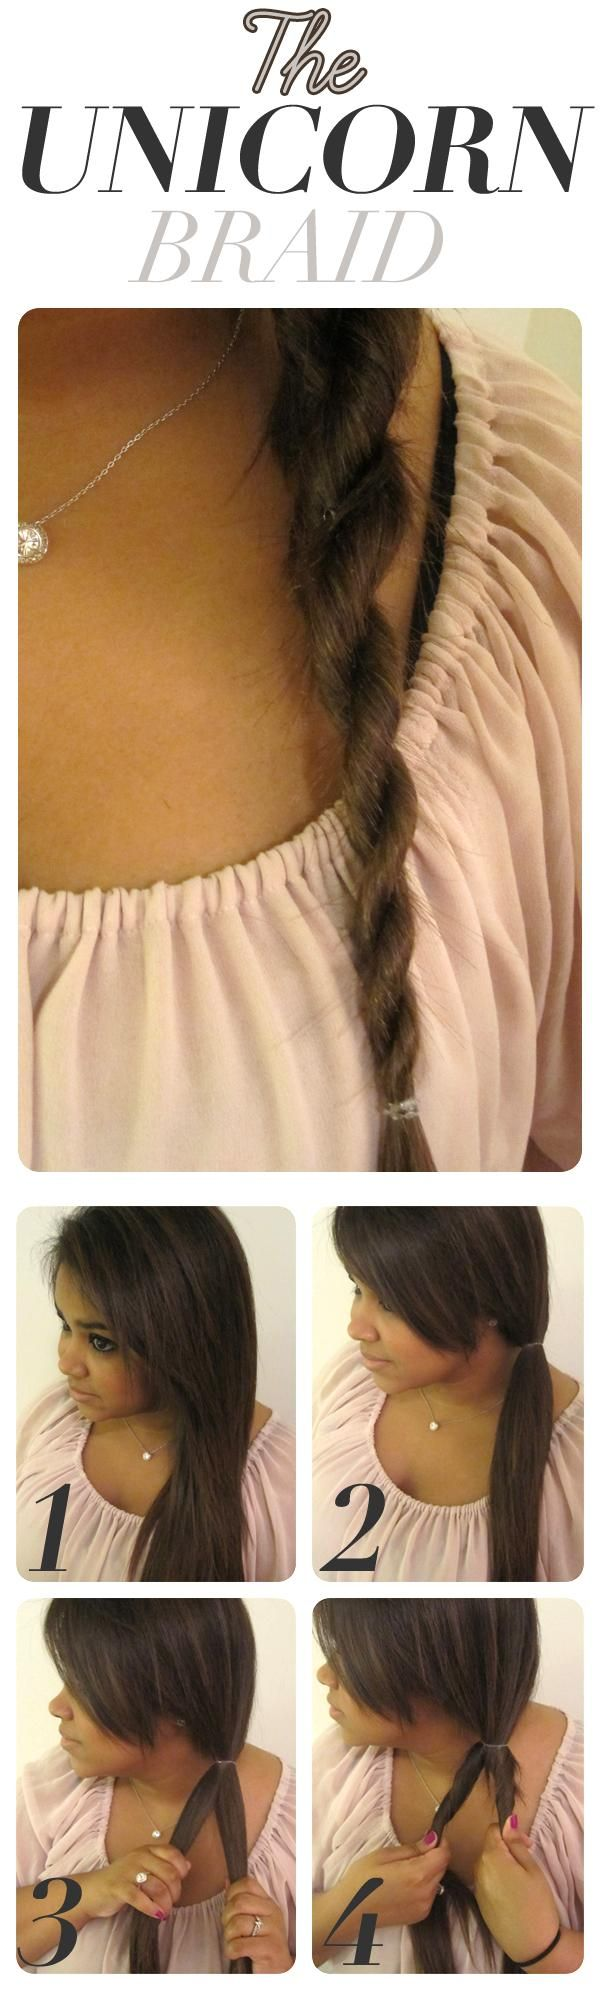 18 Pinterest Hair Tutorials You Need To Try Page 4 Of 19